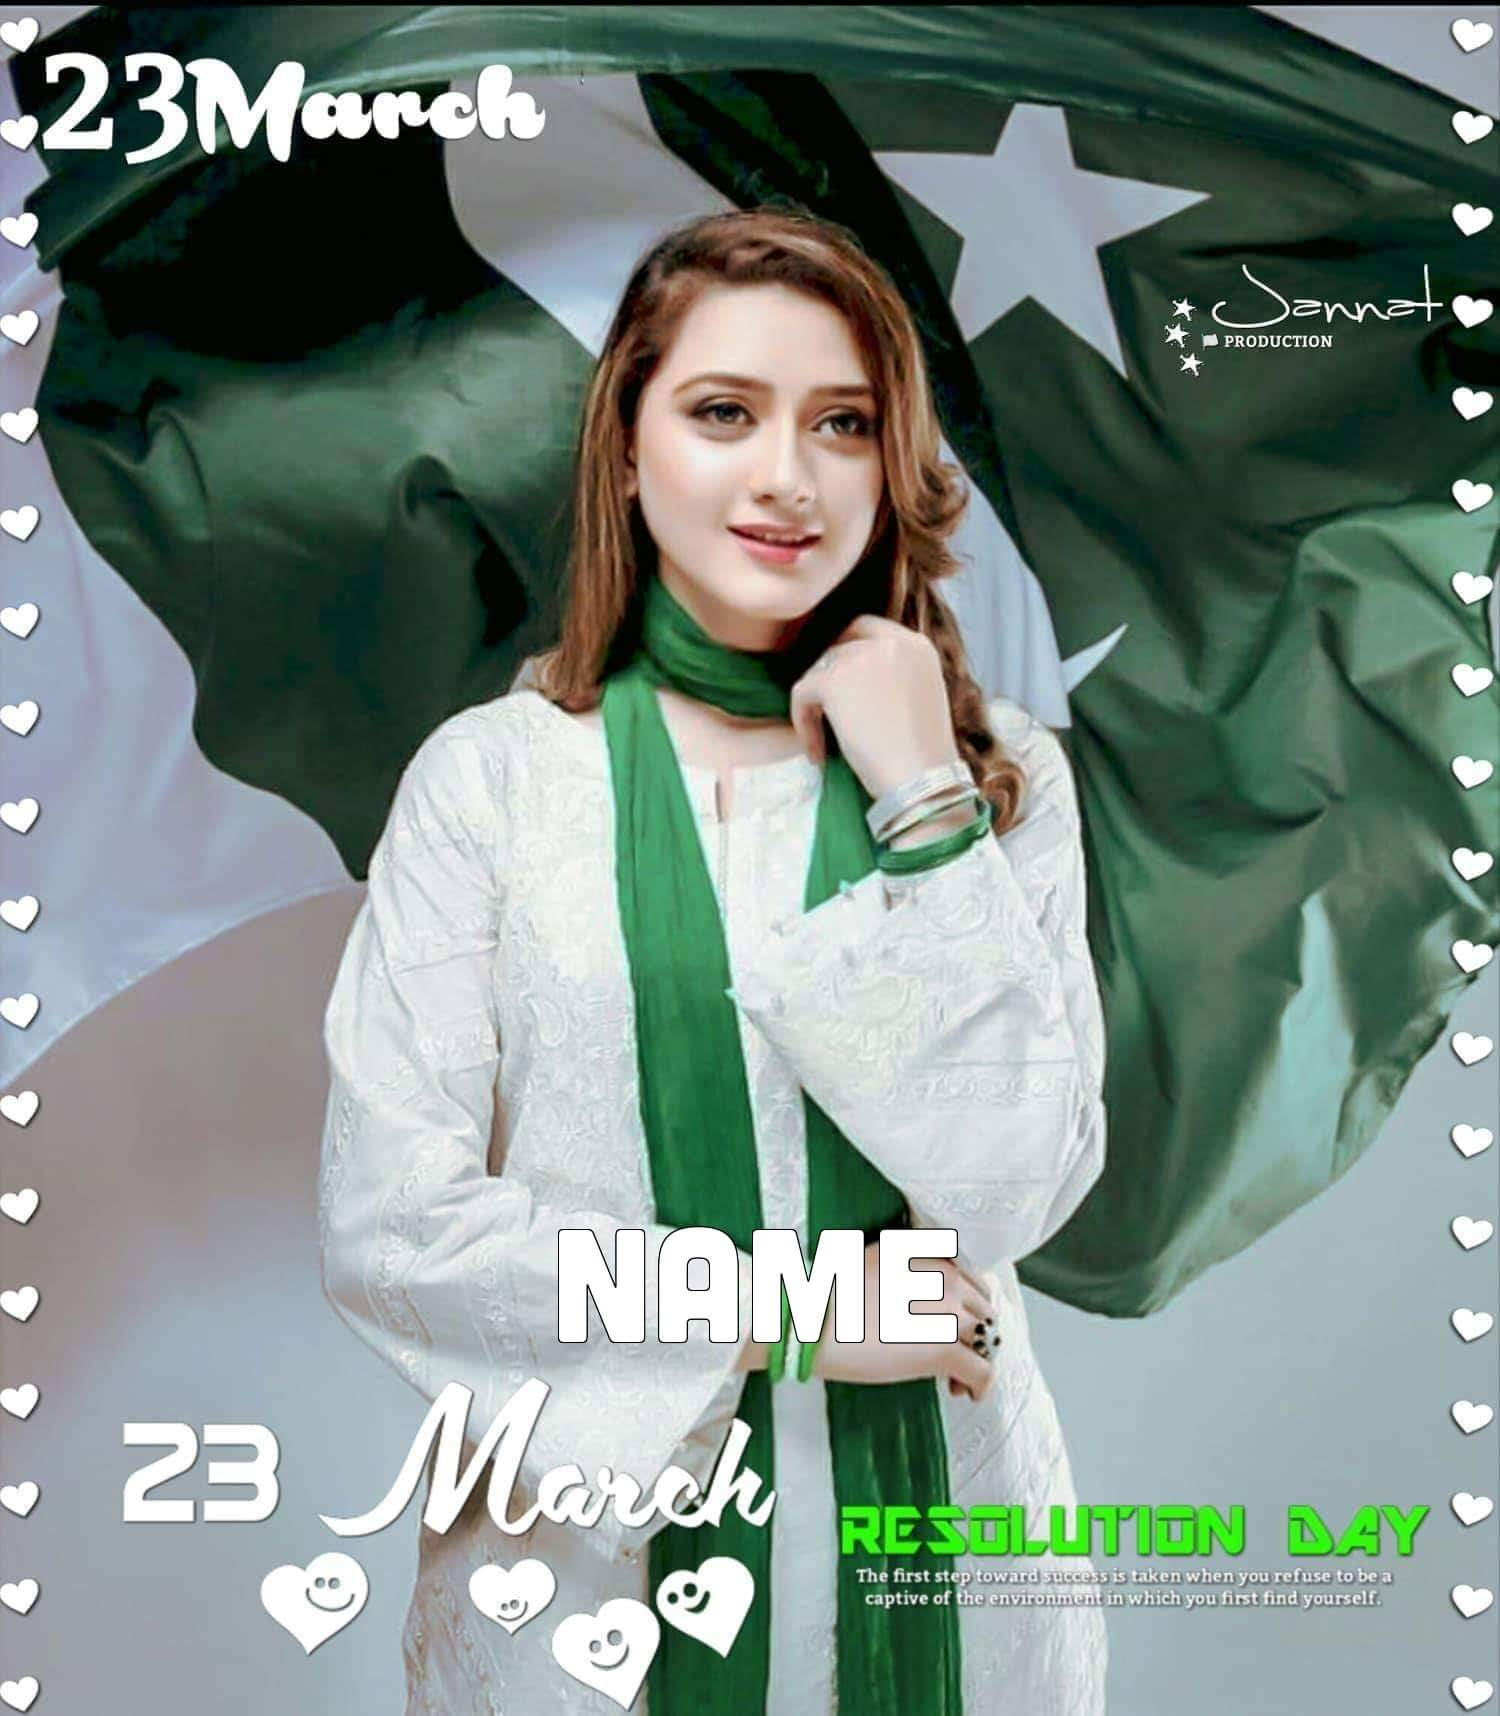 Girls Dp For 23 March